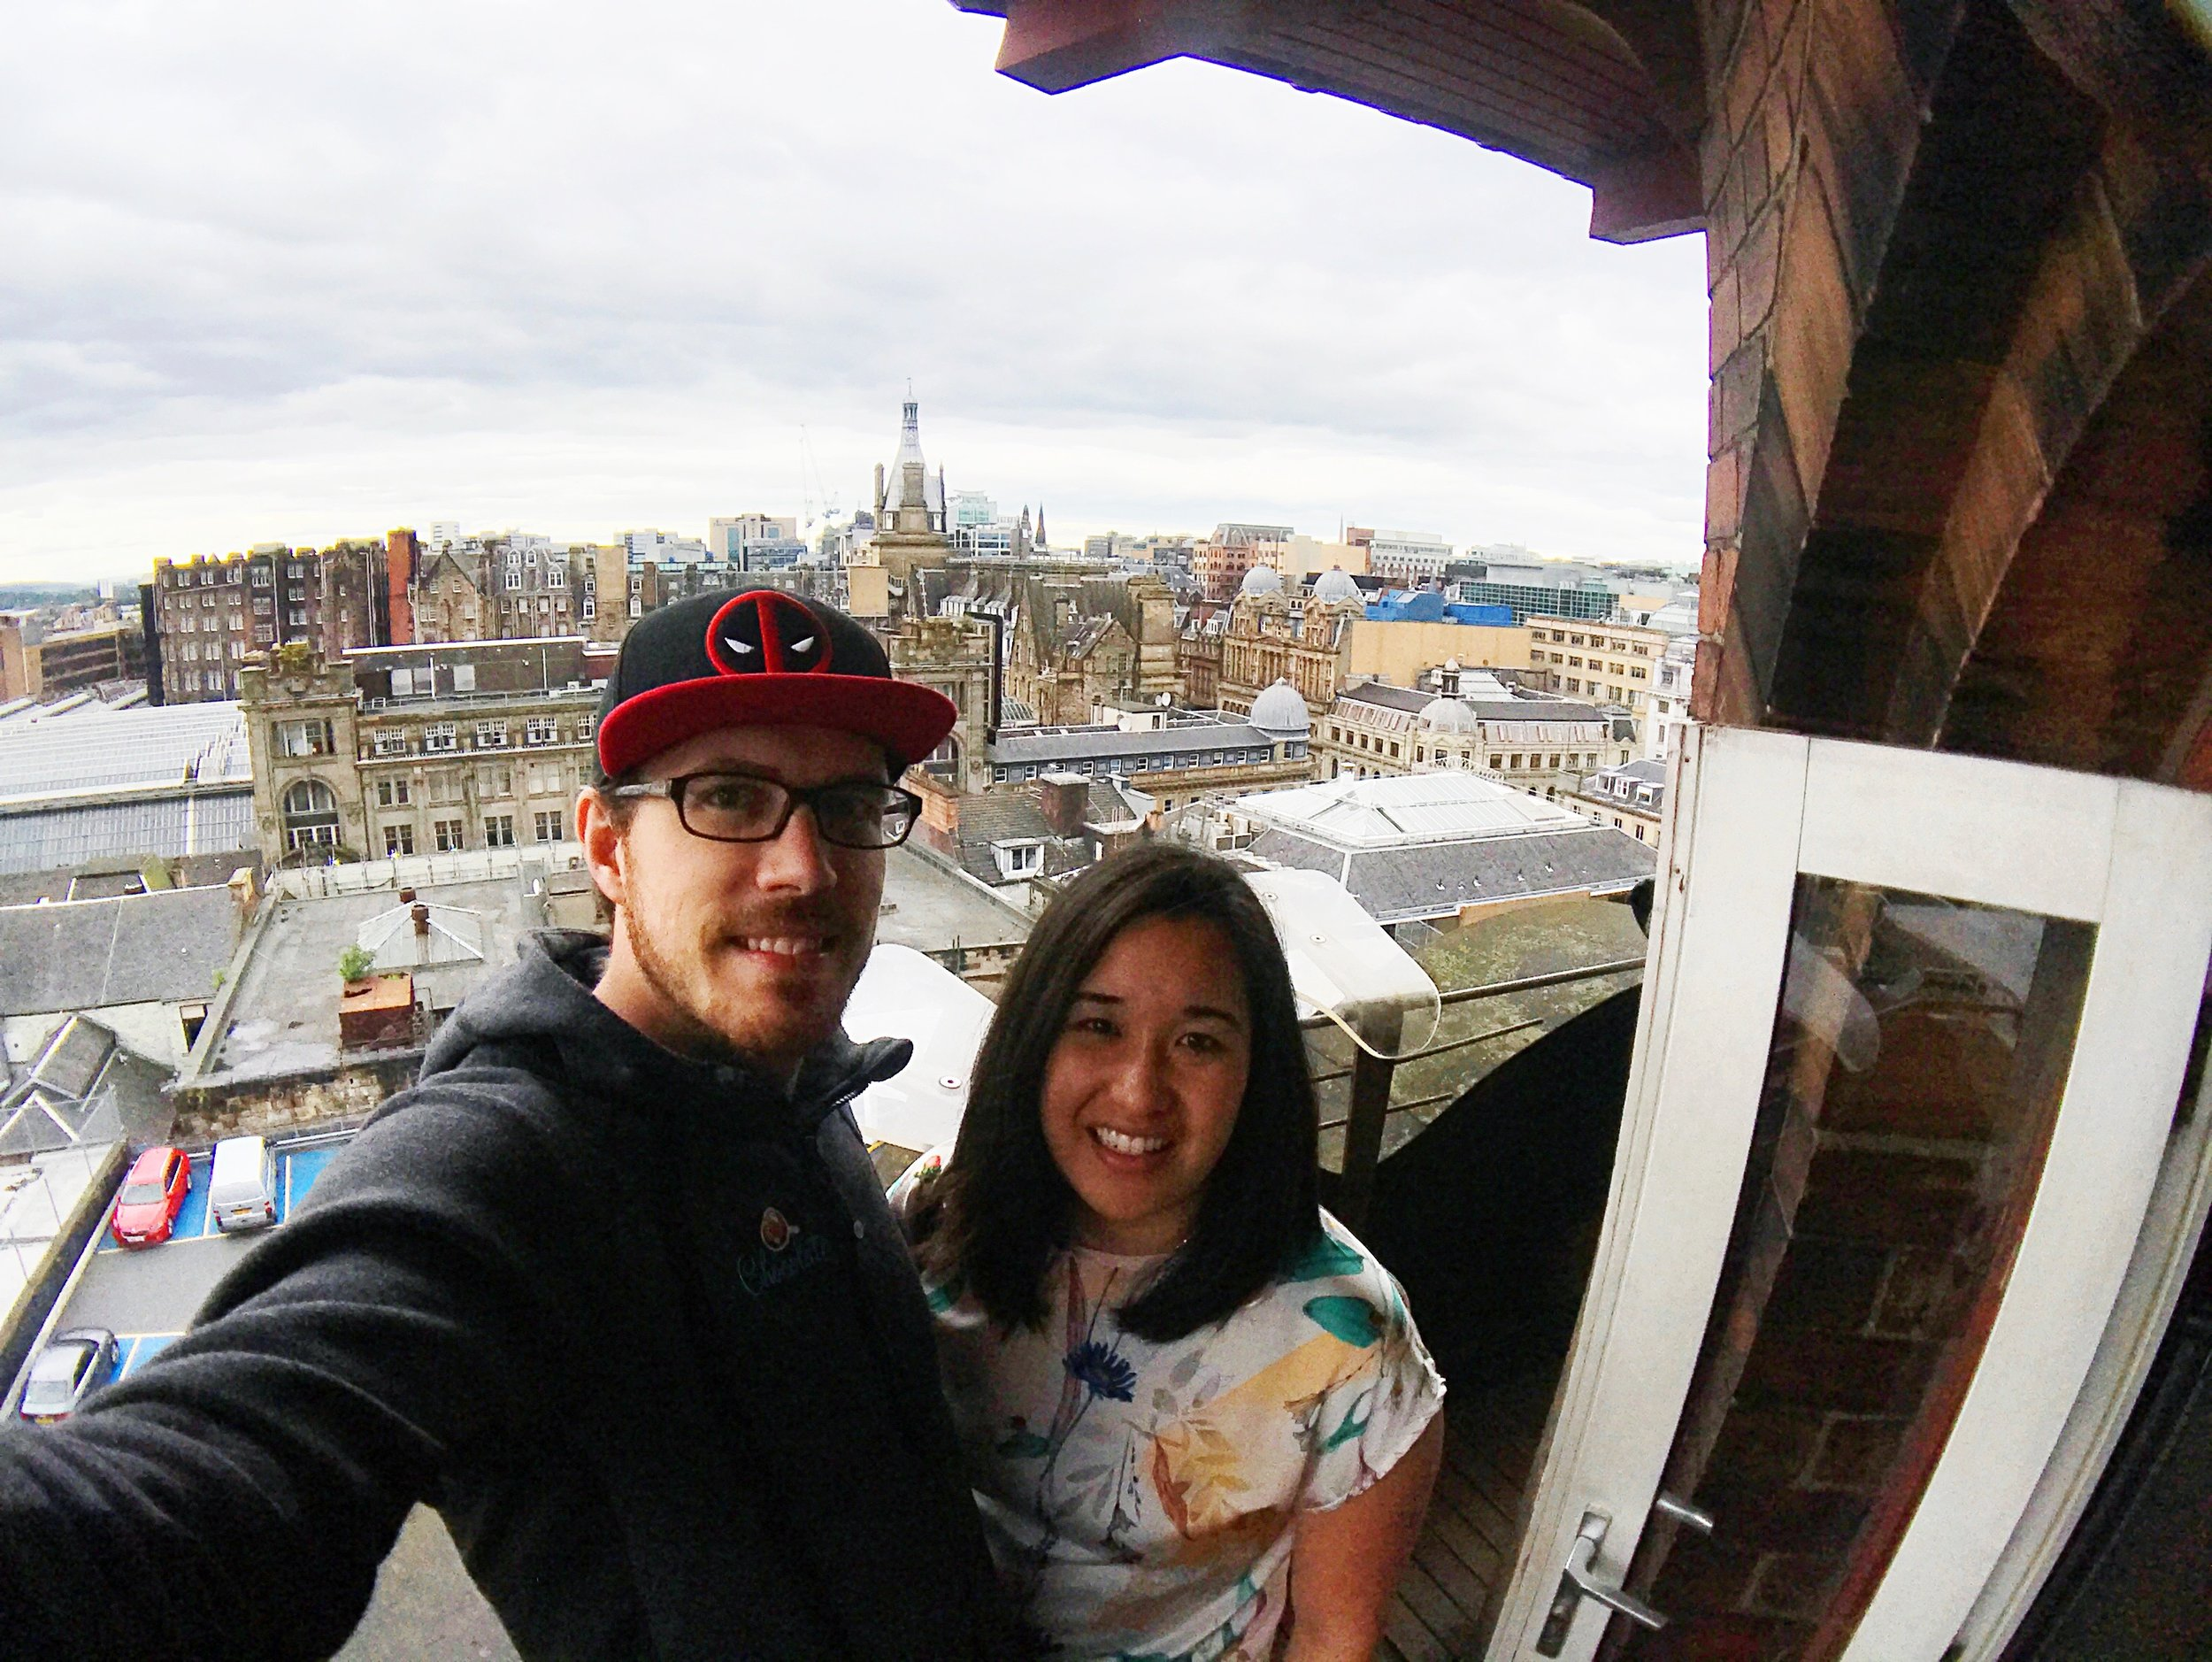 Us at the top of The Lighthouse, overlooking Glasgow